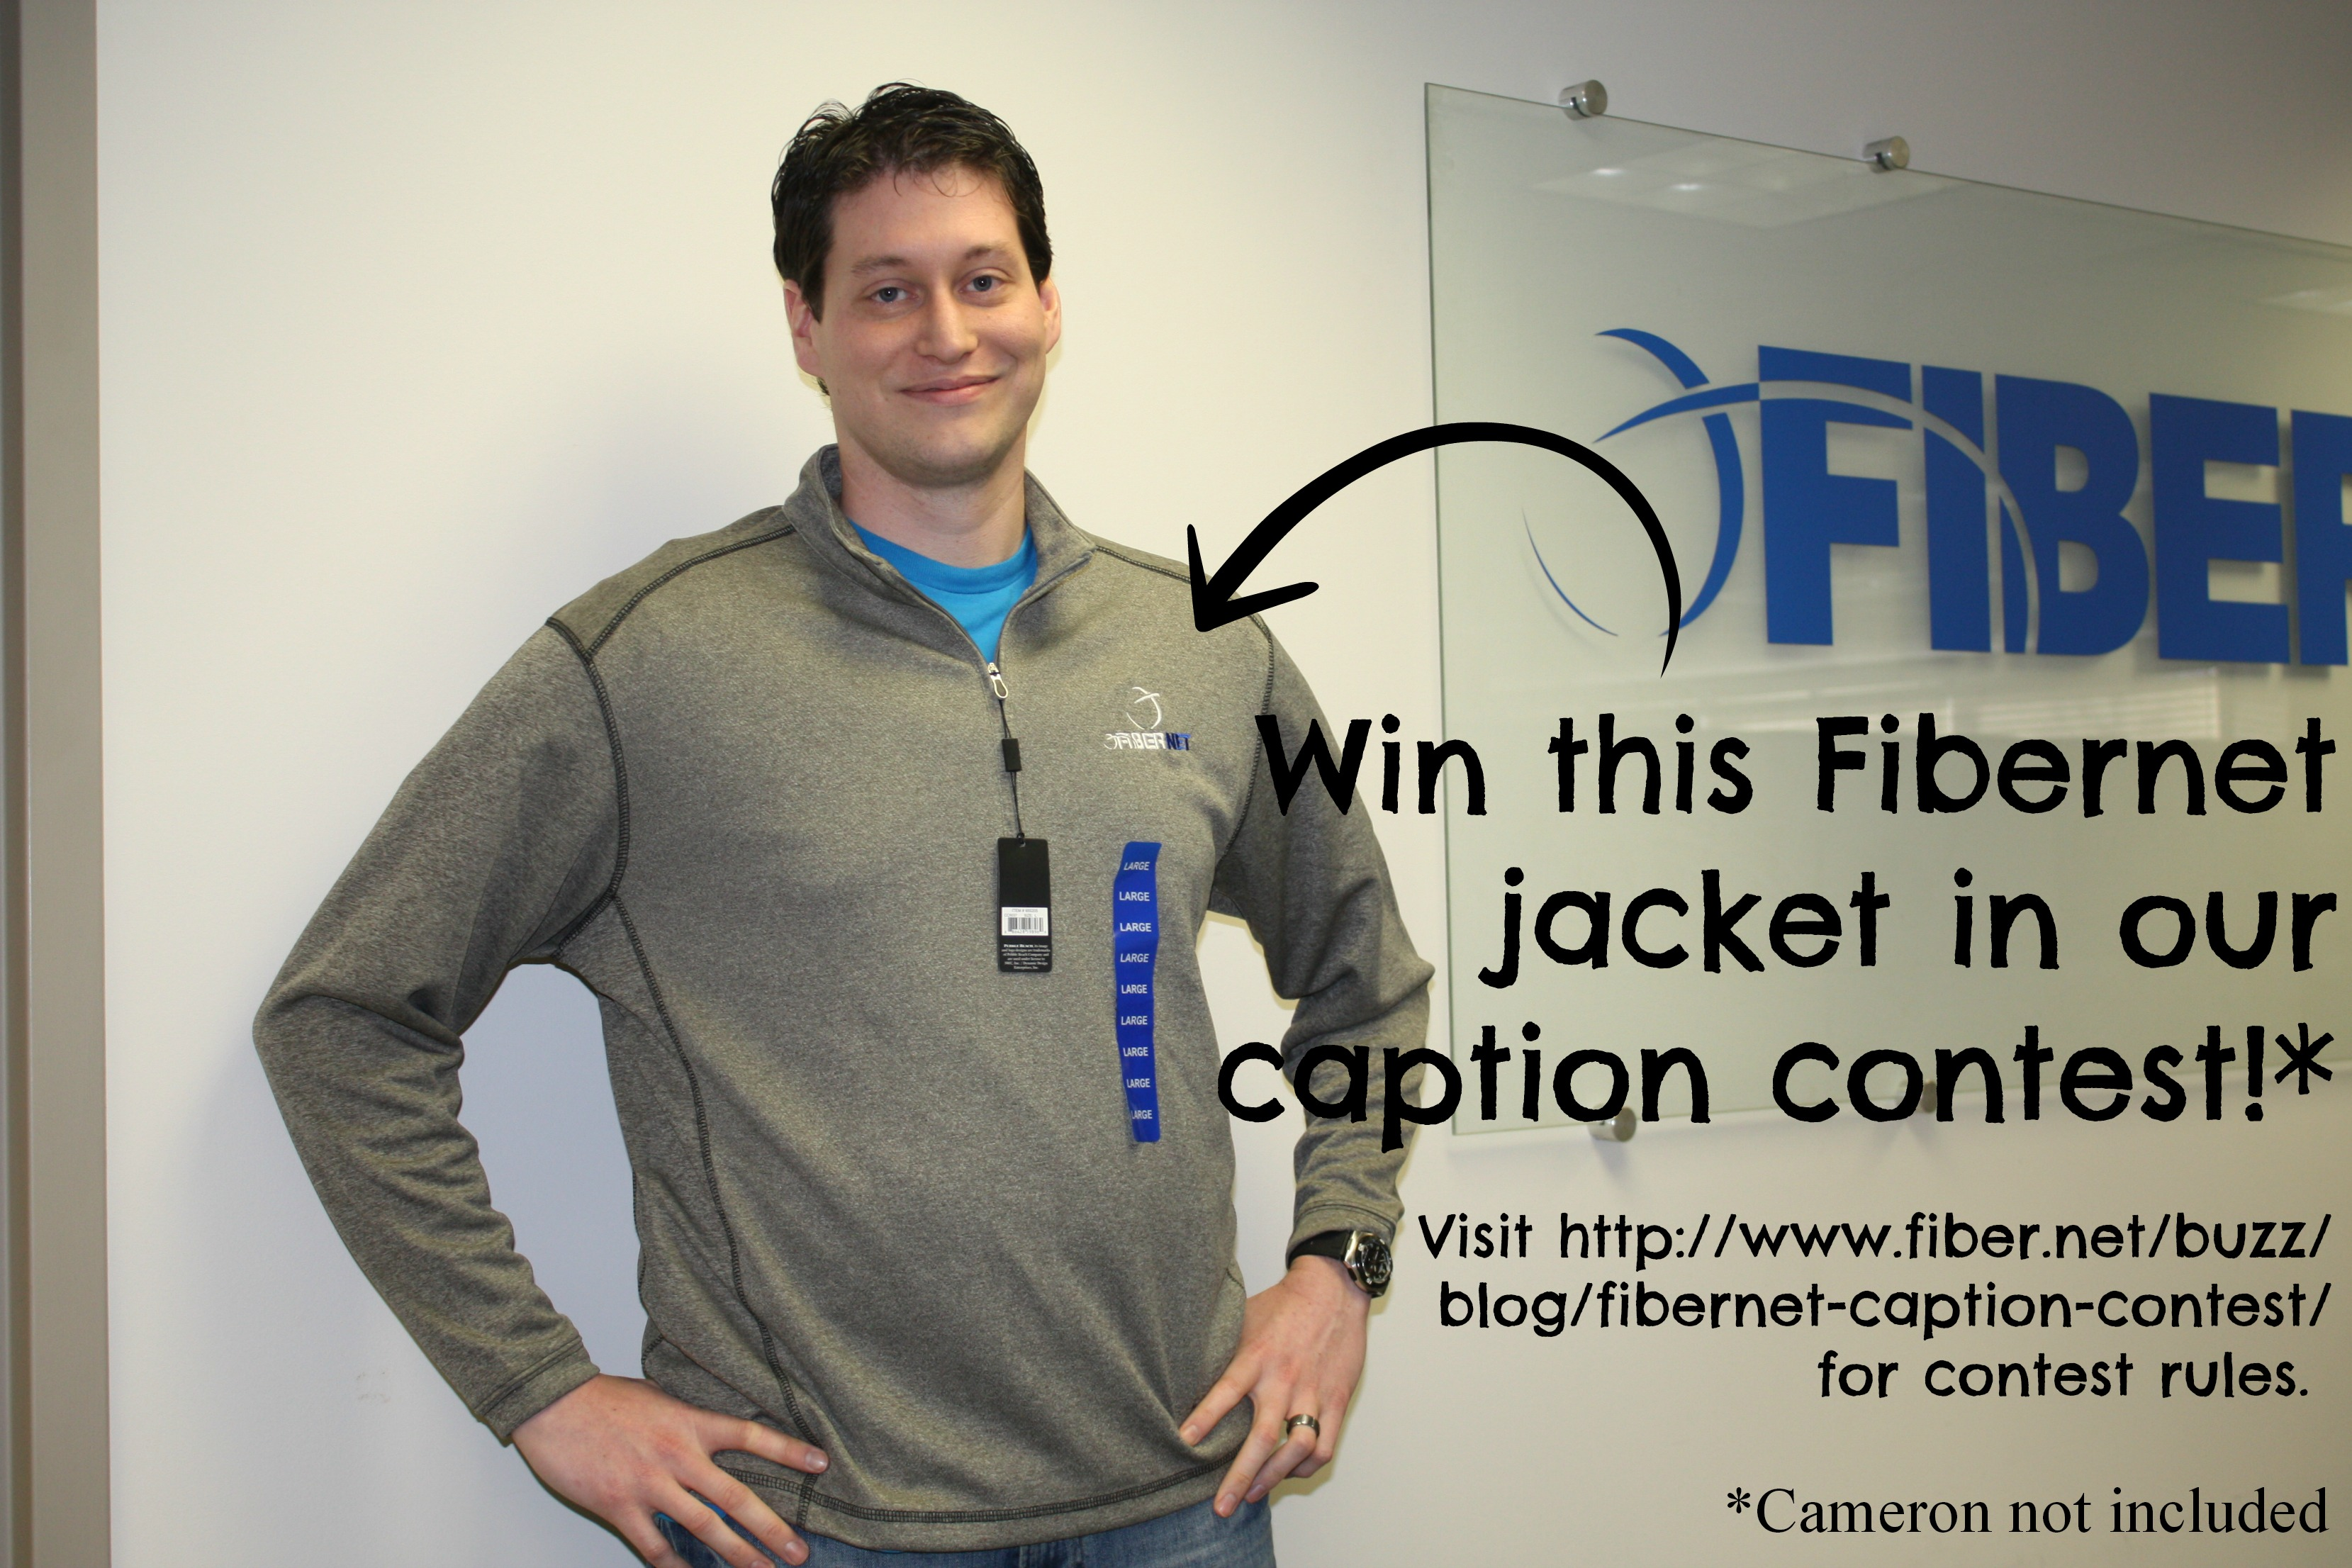 We're giving away this Fibernet jacket to whoever wins our caption contest!